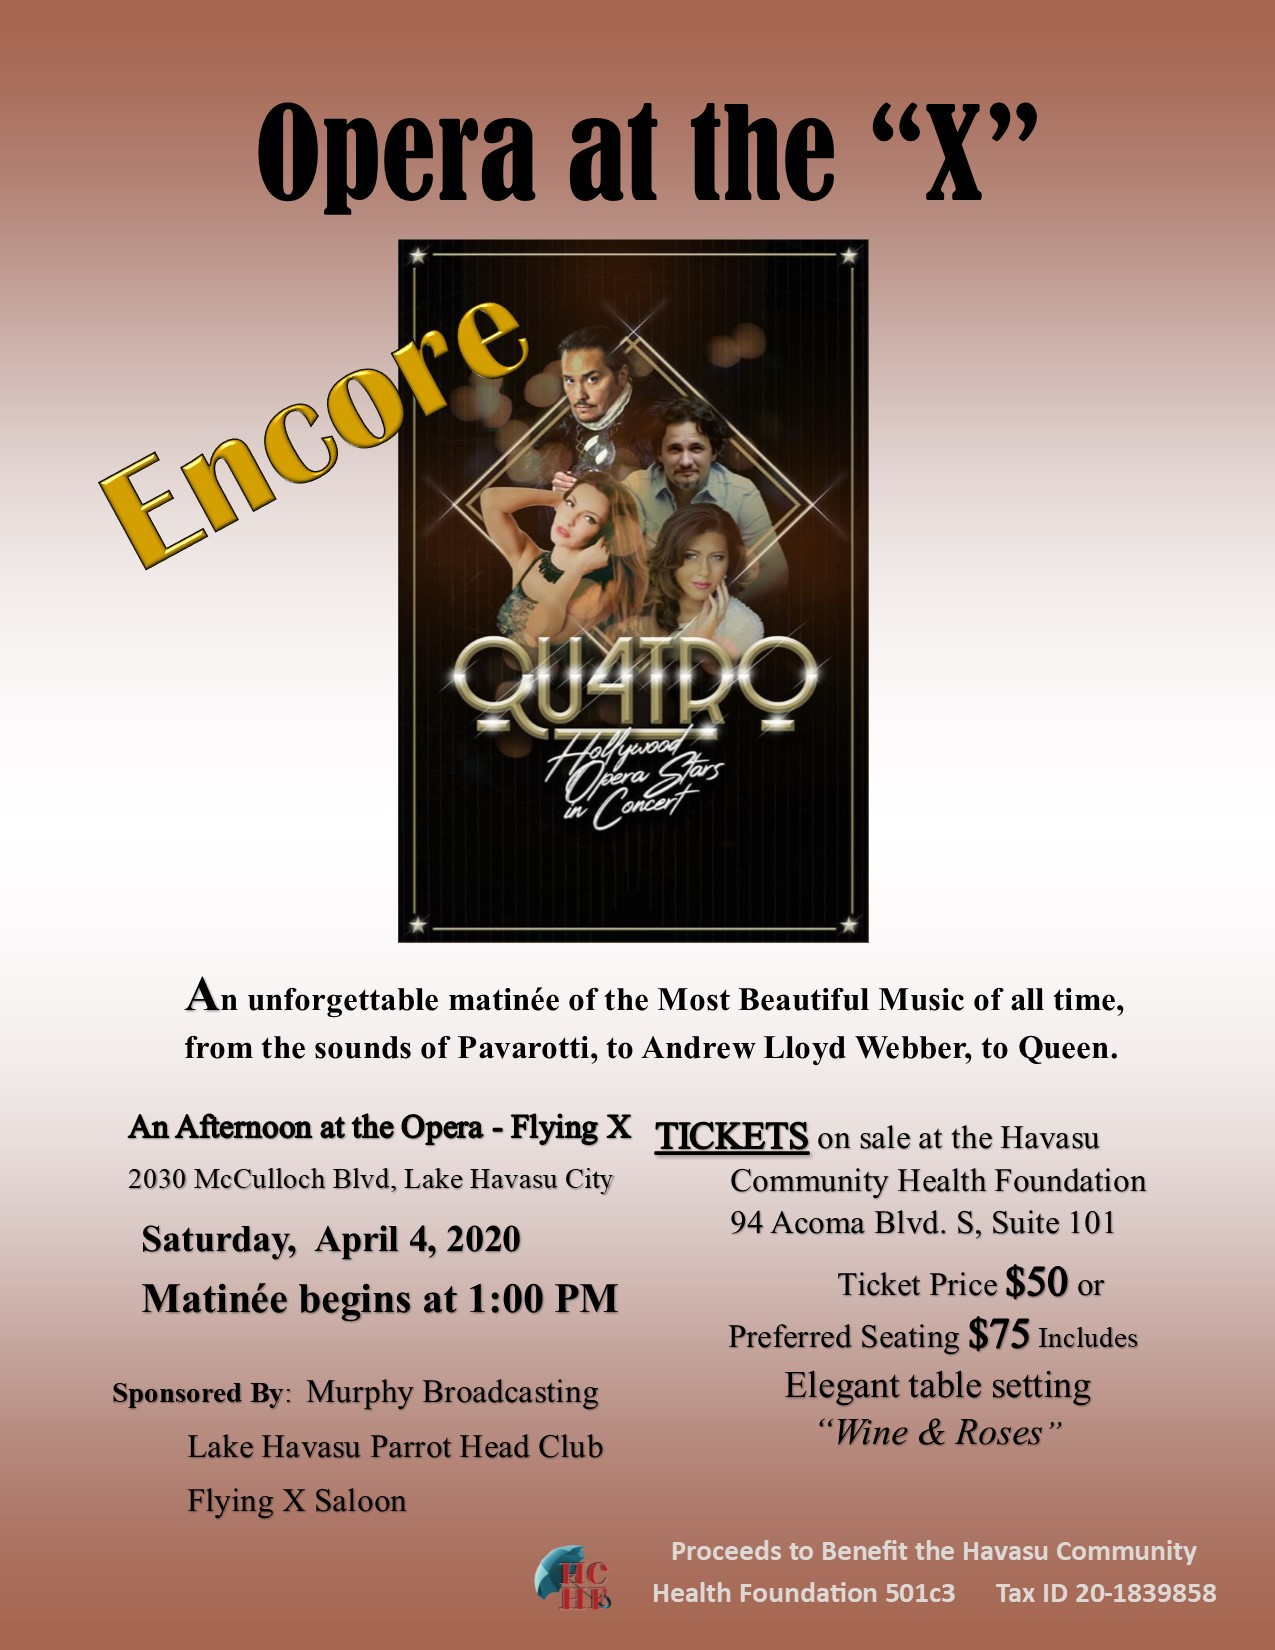 Opera at the X – Encore is postponed.